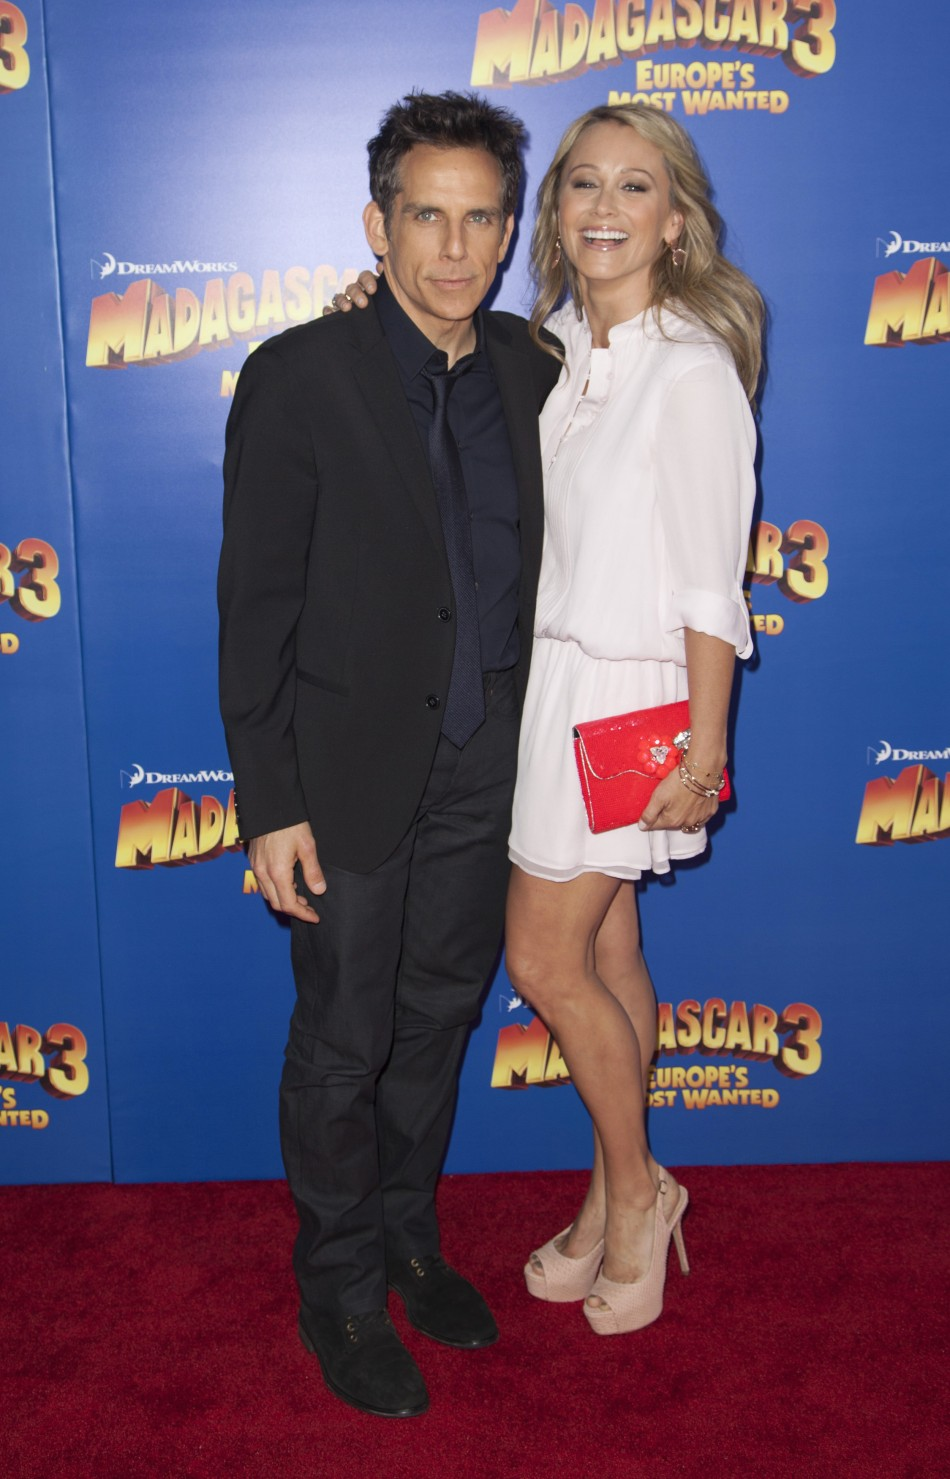 Cast member Ben Stiller and his wife actress Christine Taylor-Stiller arrive for the premiere of quotMadagascar 3 Europes Most Wantedquot in New York